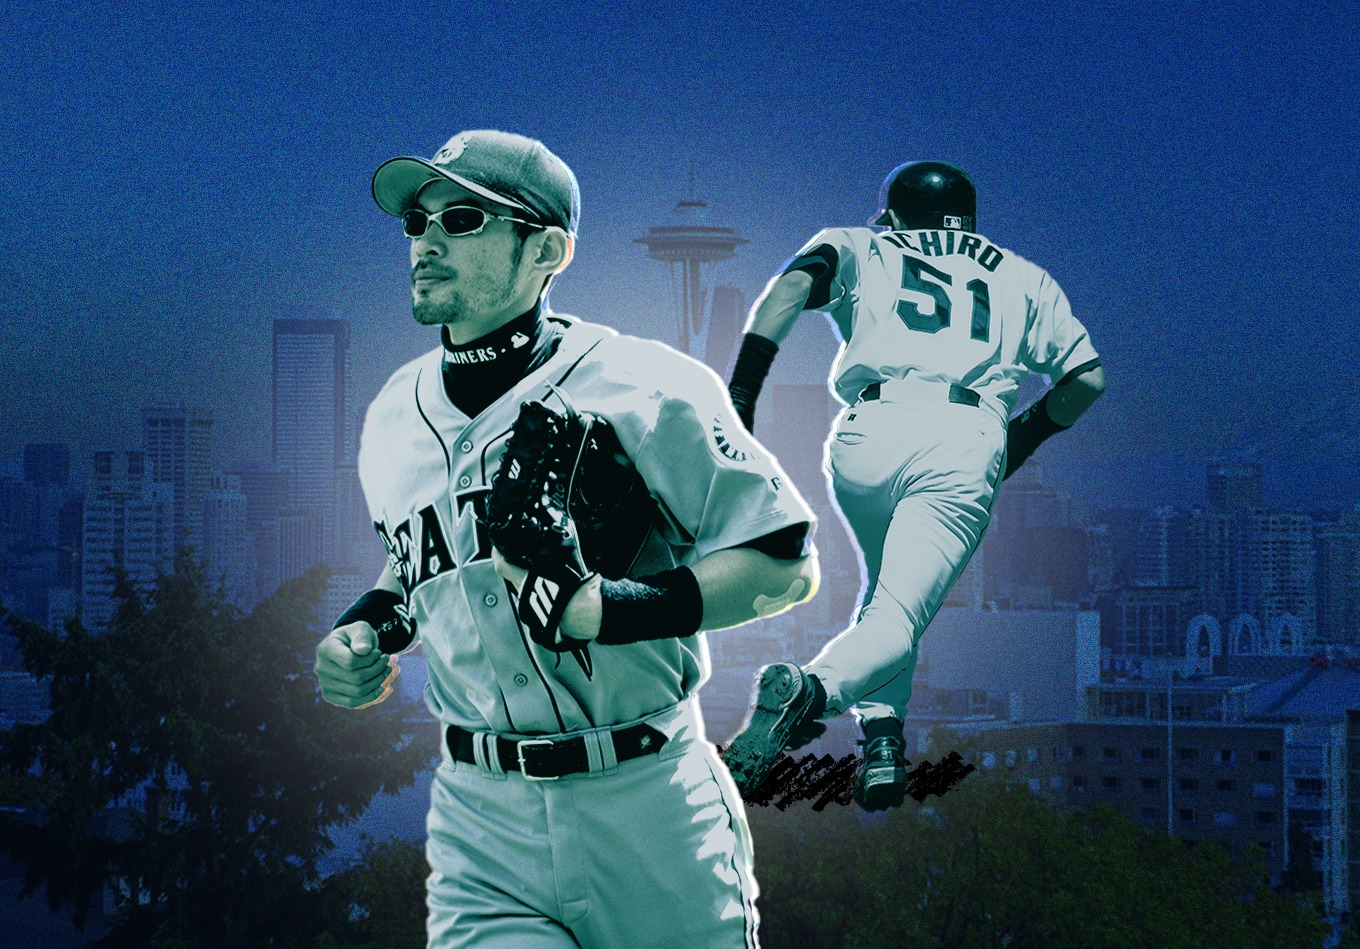 A Superstar Like No Other: An Ode to the Unique Brilliance of Ichiro